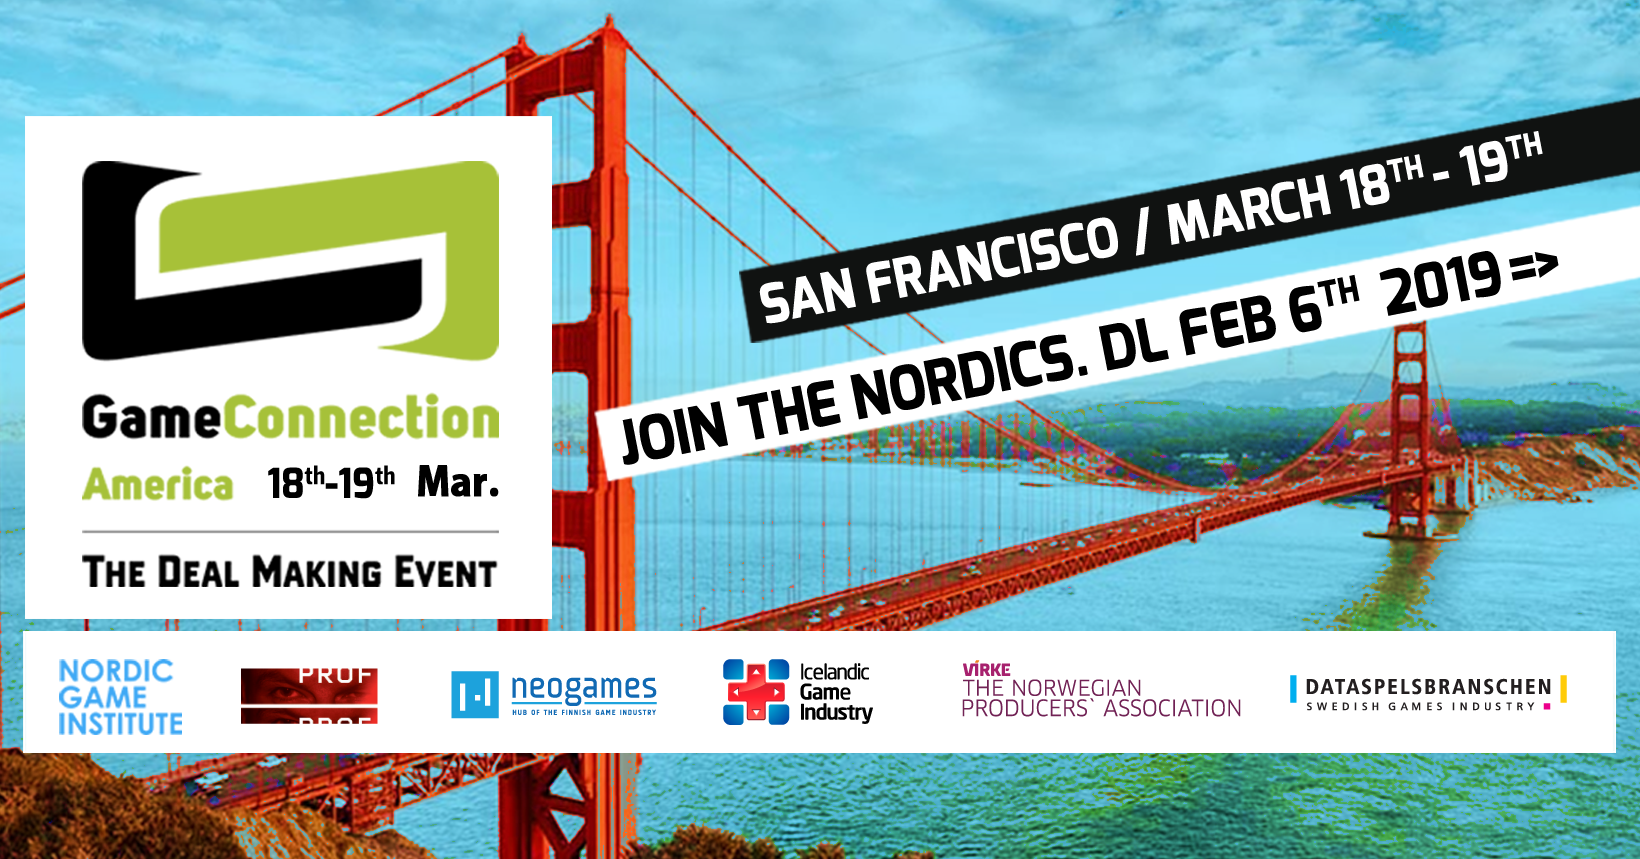 20ece23a2 JOIN NEOGAMES AND THE NORDICS AT GAME CONNECTION AMERICA 18.-19.3.2019 IN  SAN FRANCISCO